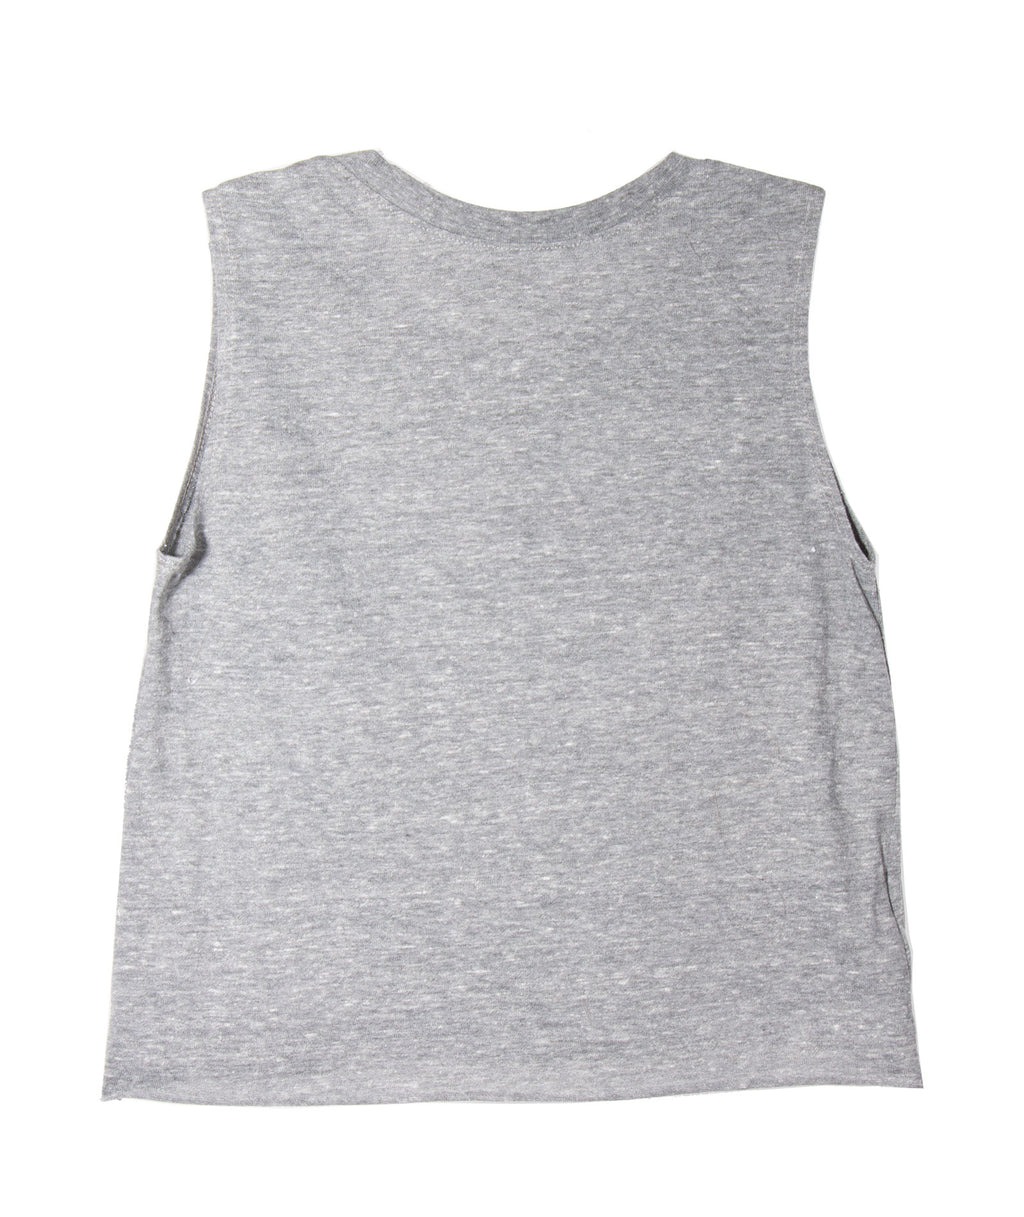 So Nikki Girls Crop Tank in White, Heather Grey or Charcoal Grey